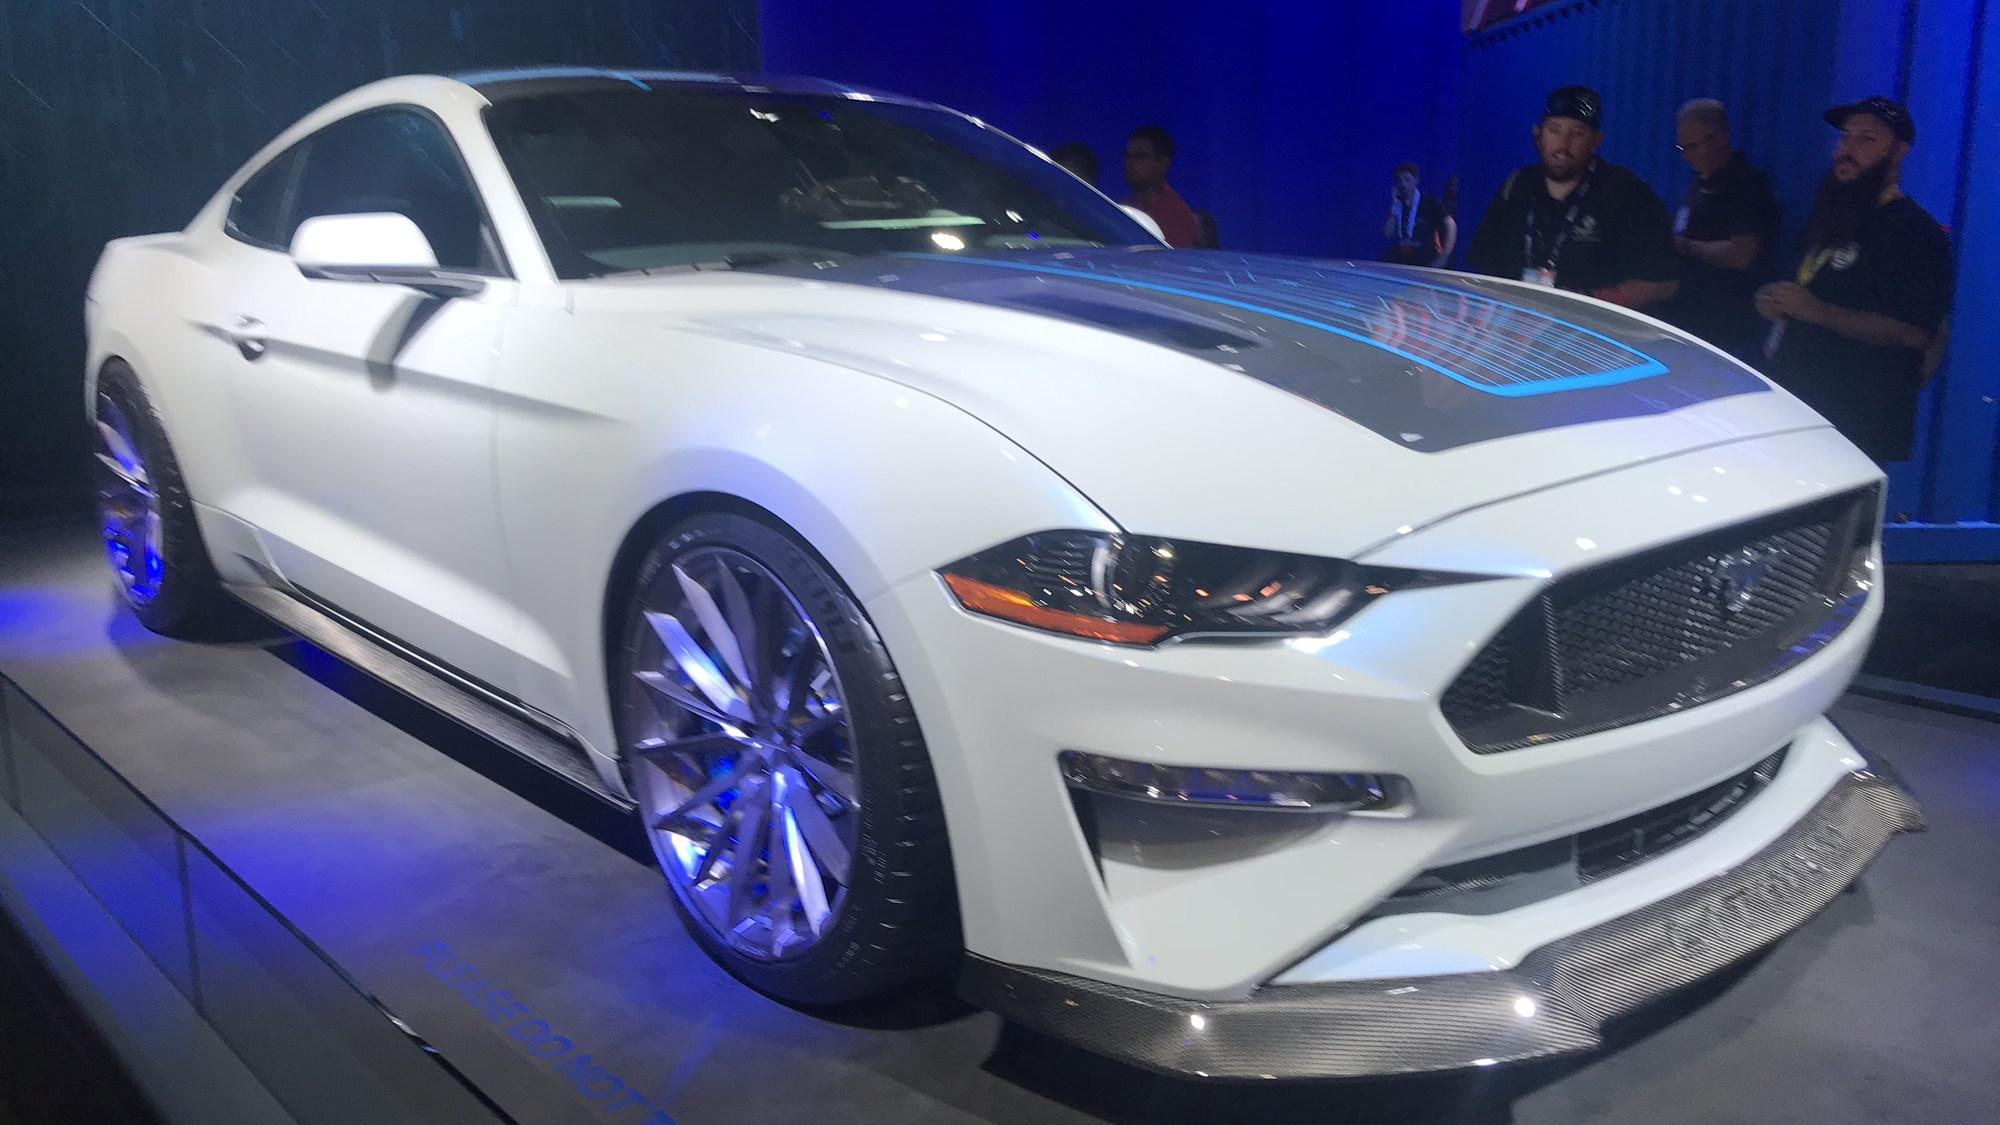 Ford Mustang Lithium electric car  -  Ford/Webasto  -  2019 SEMA show